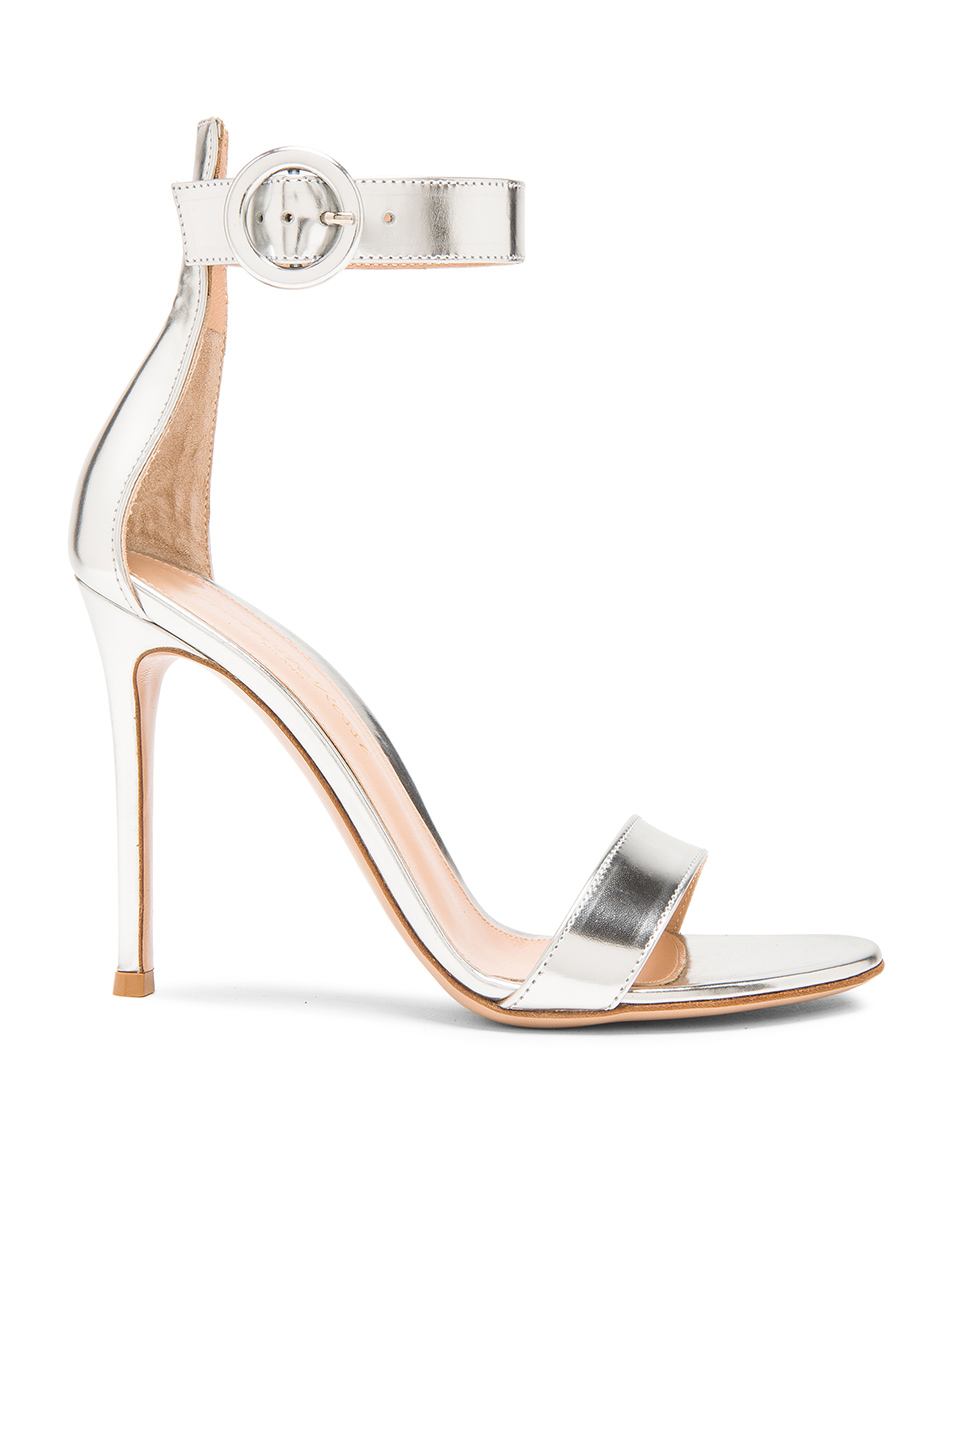 Portofino 105 Metallic Leather Sandals - Silver Gianvito Rossi